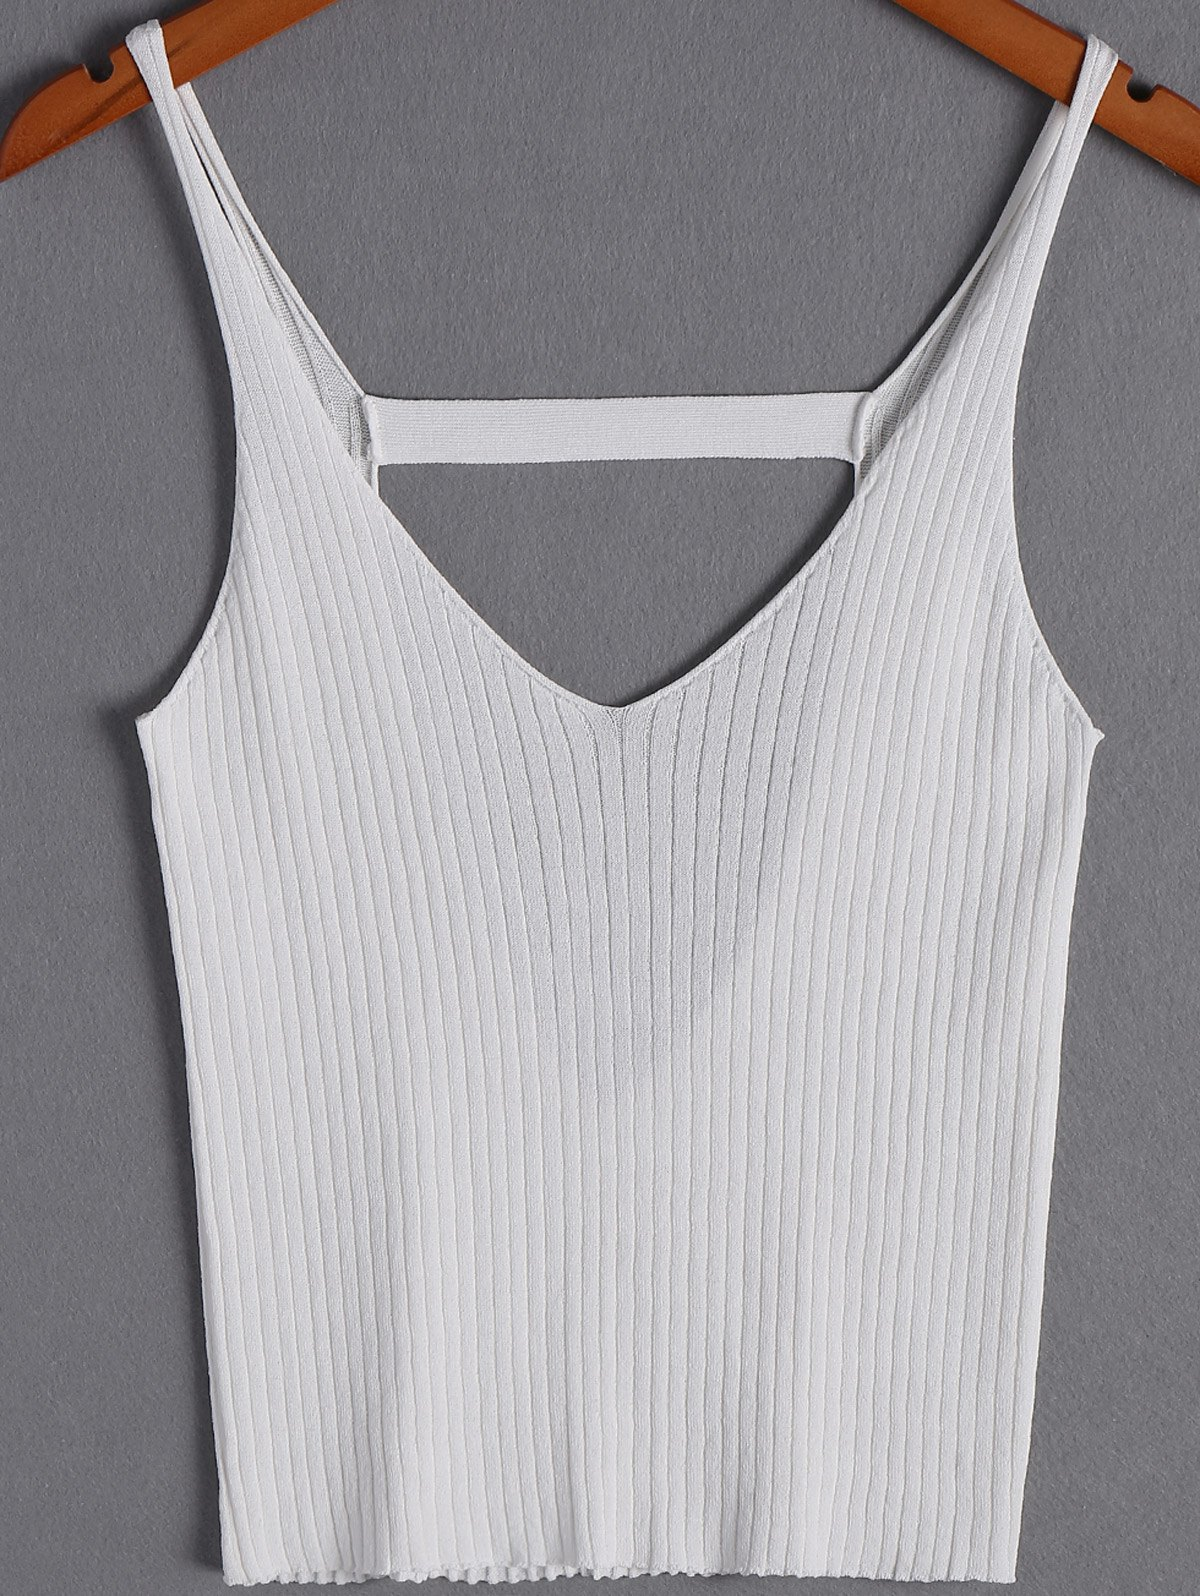 Stylish Women's V-Neck Spaghetti Strap Backless Top - WHITE ONE SIZE(FIT SIZE XS TO M)